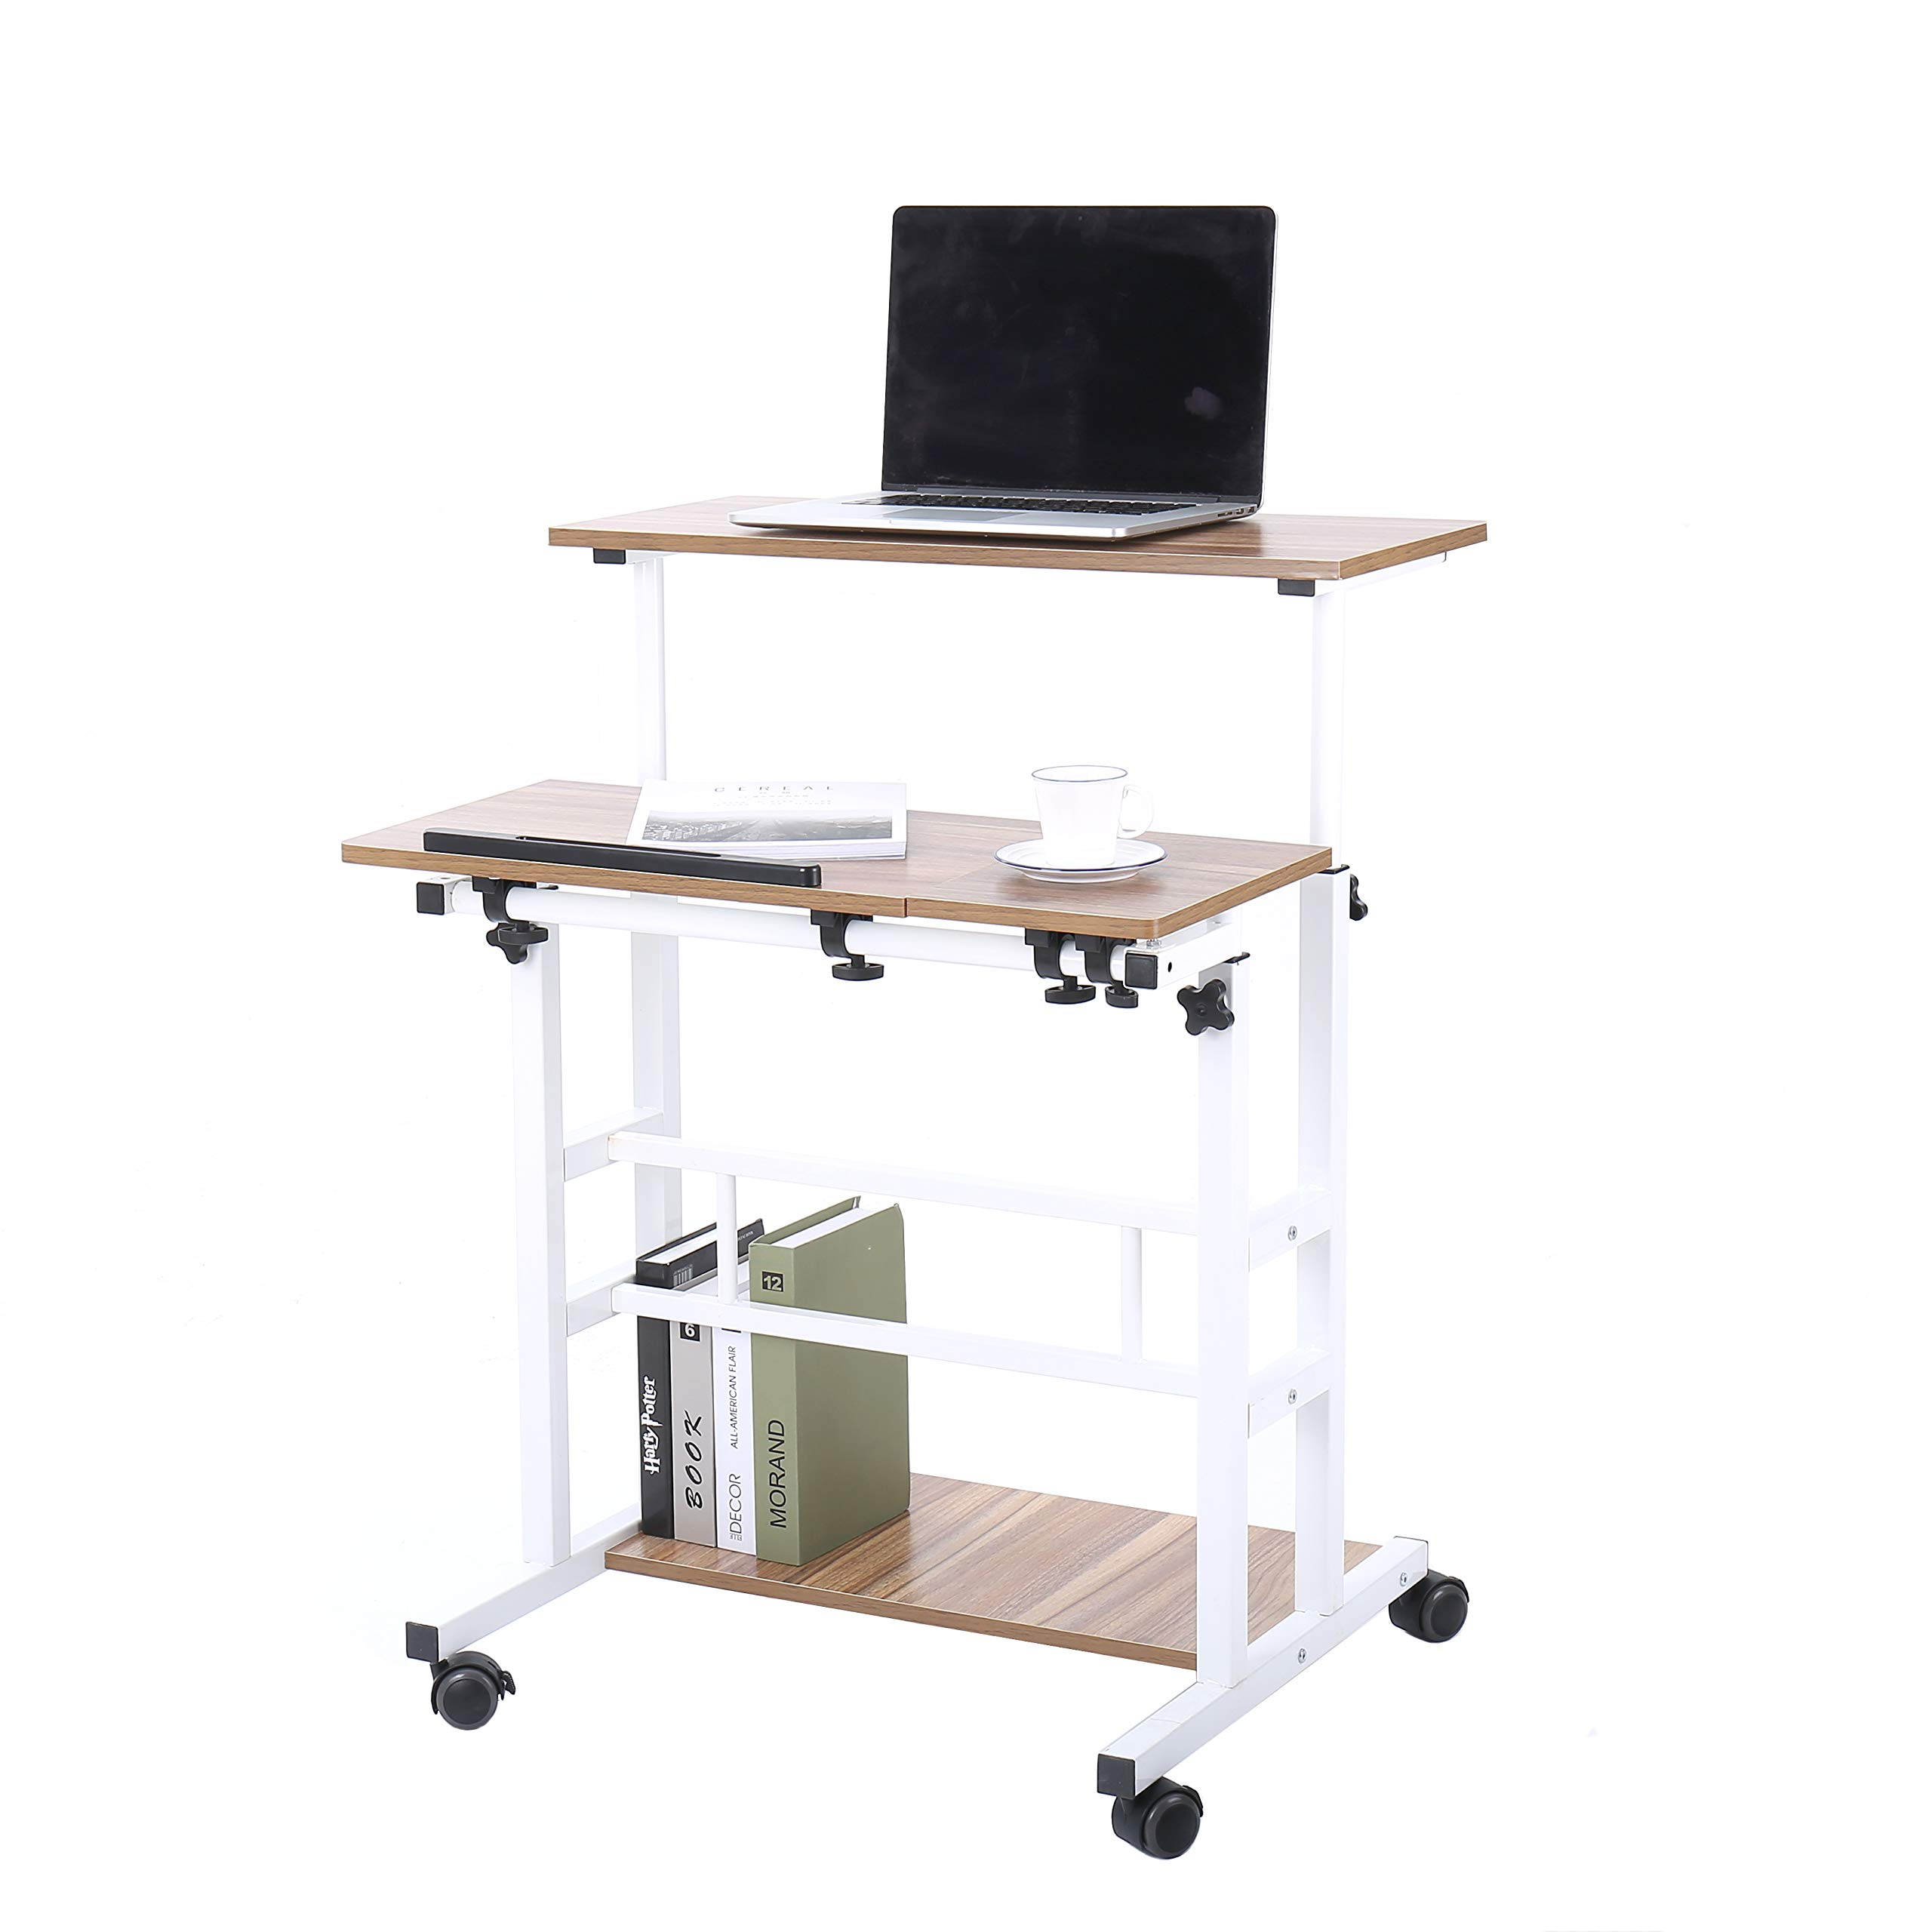 14a89e915852 UNICOO- Height Adjustable Sit Stand Workstation, Mobile Standing ...